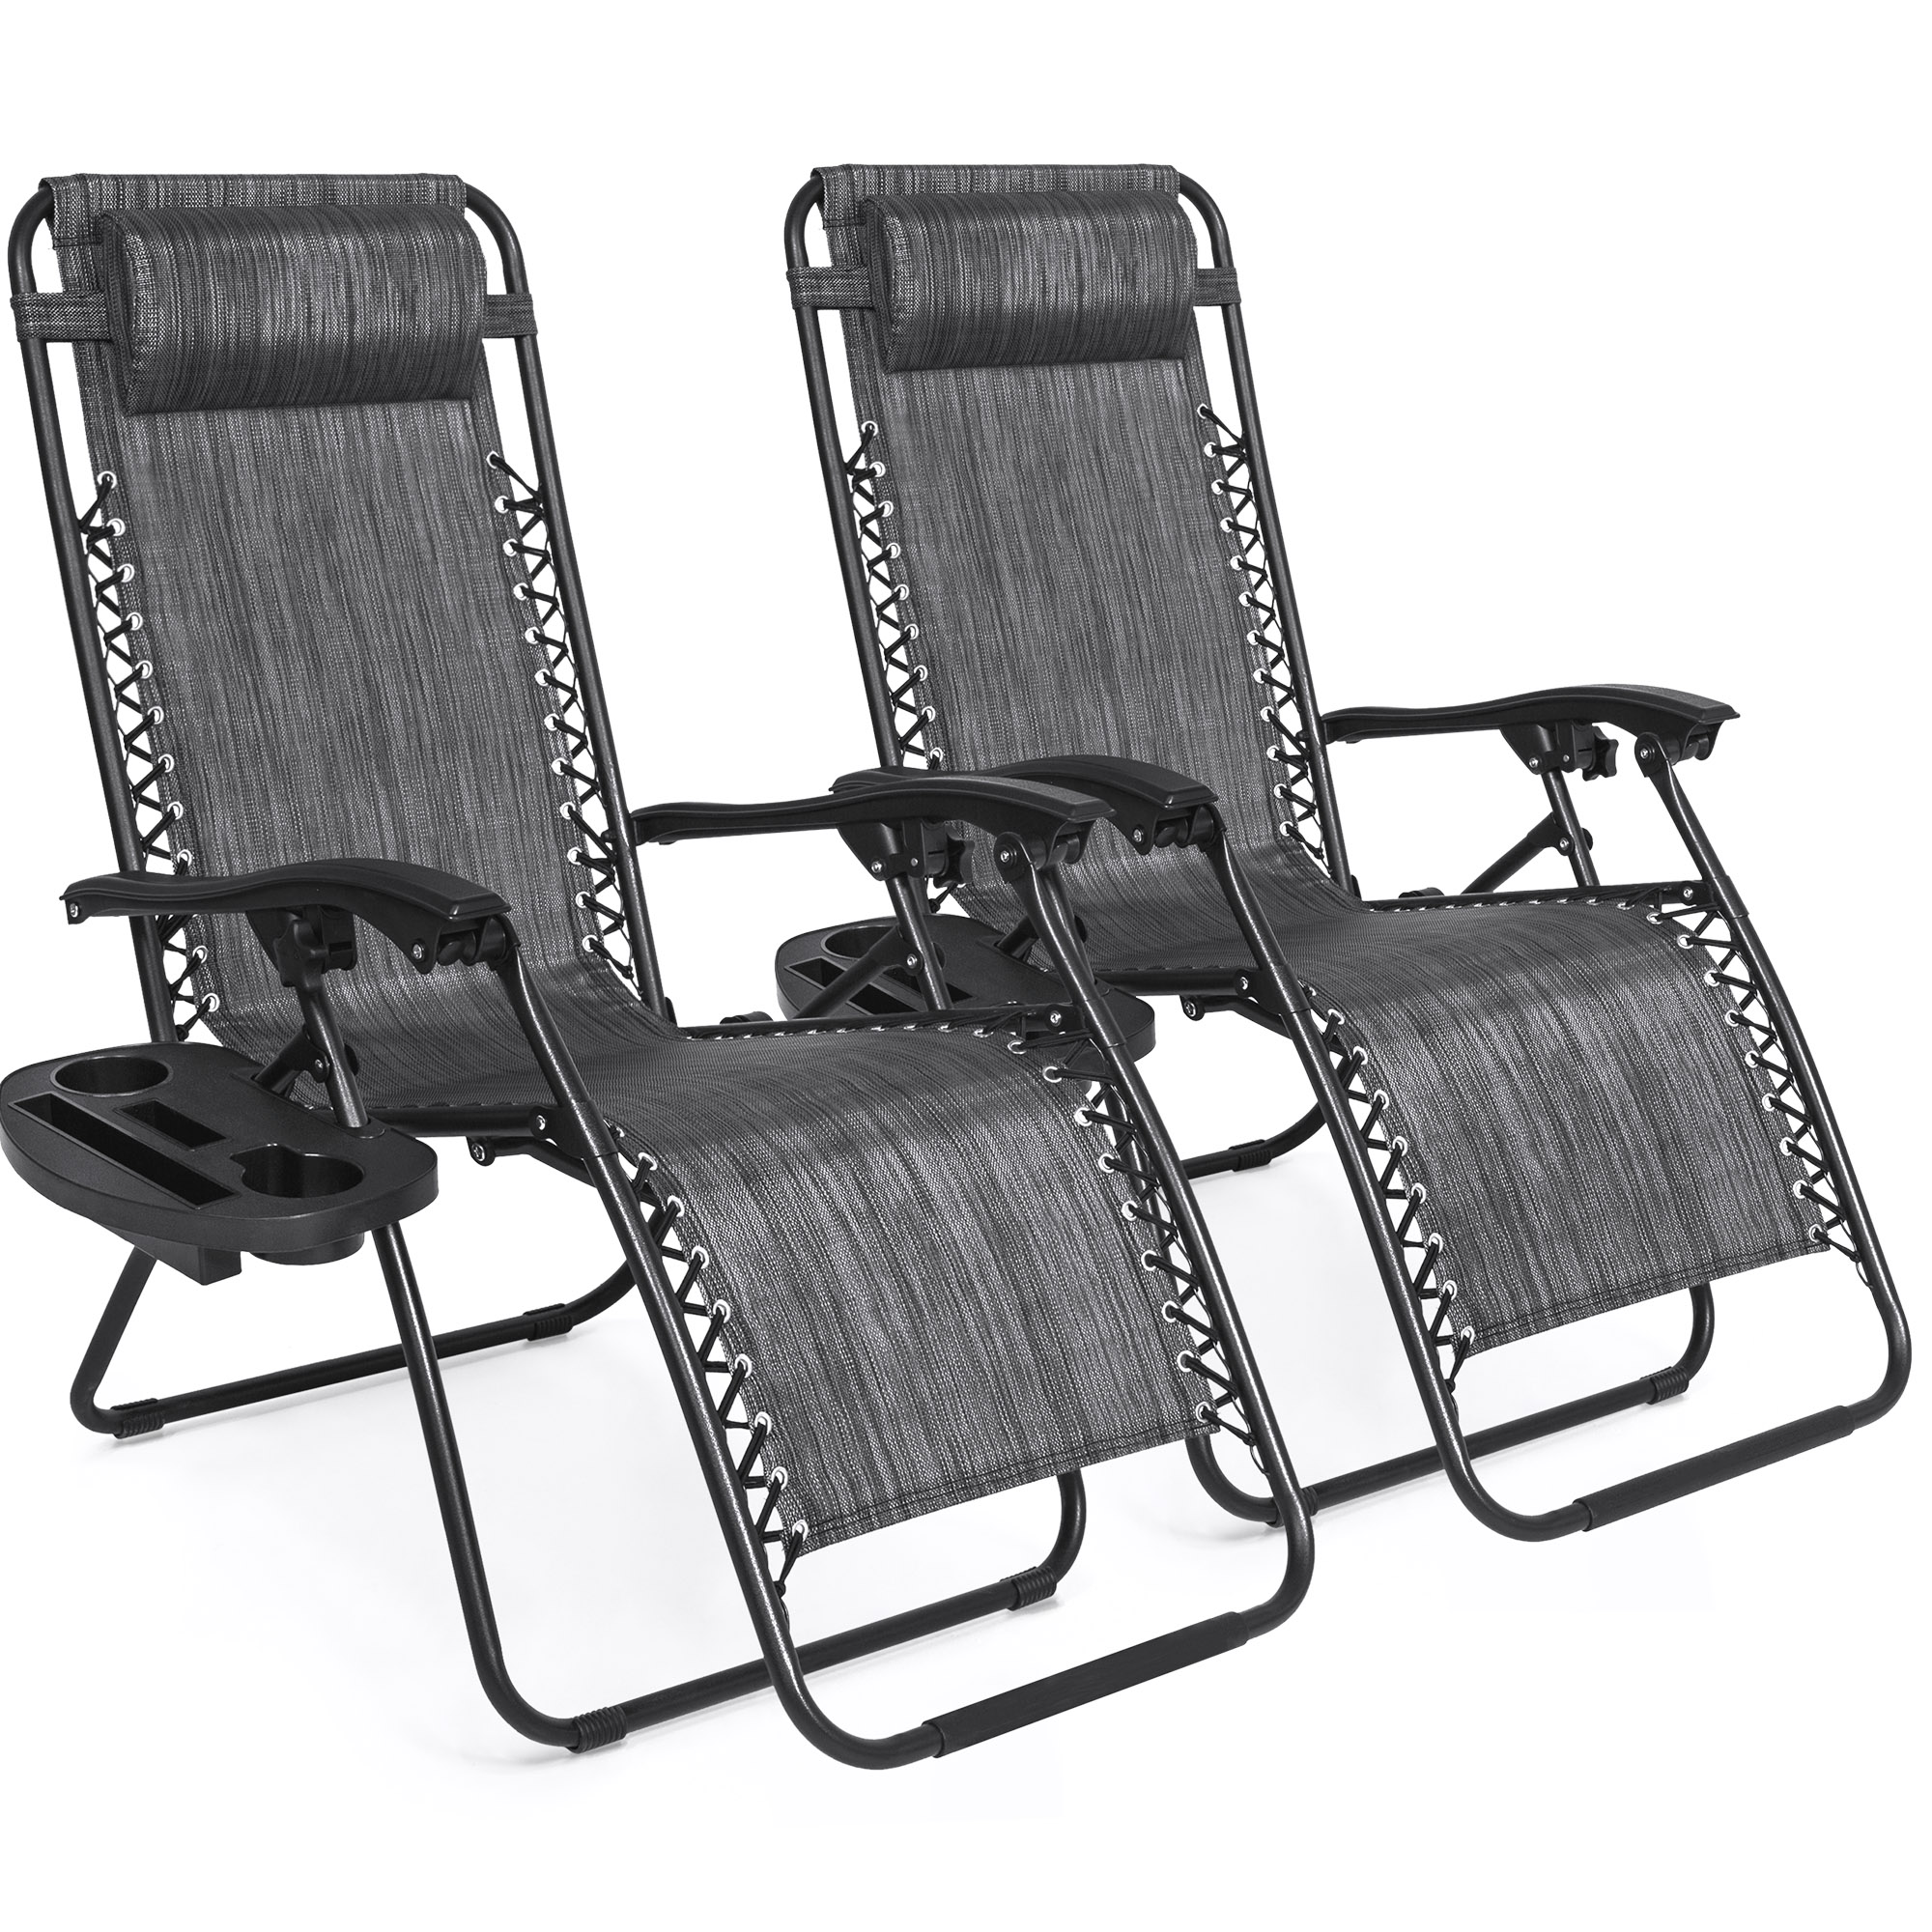 Cool Best Choice Products Set Of 2 Adjustable Zero Gravity Lounge Chair Recliners For Patio Pool W Cup Holders Gray Walmart Com Short Links Chair Design For Home Short Linksinfo